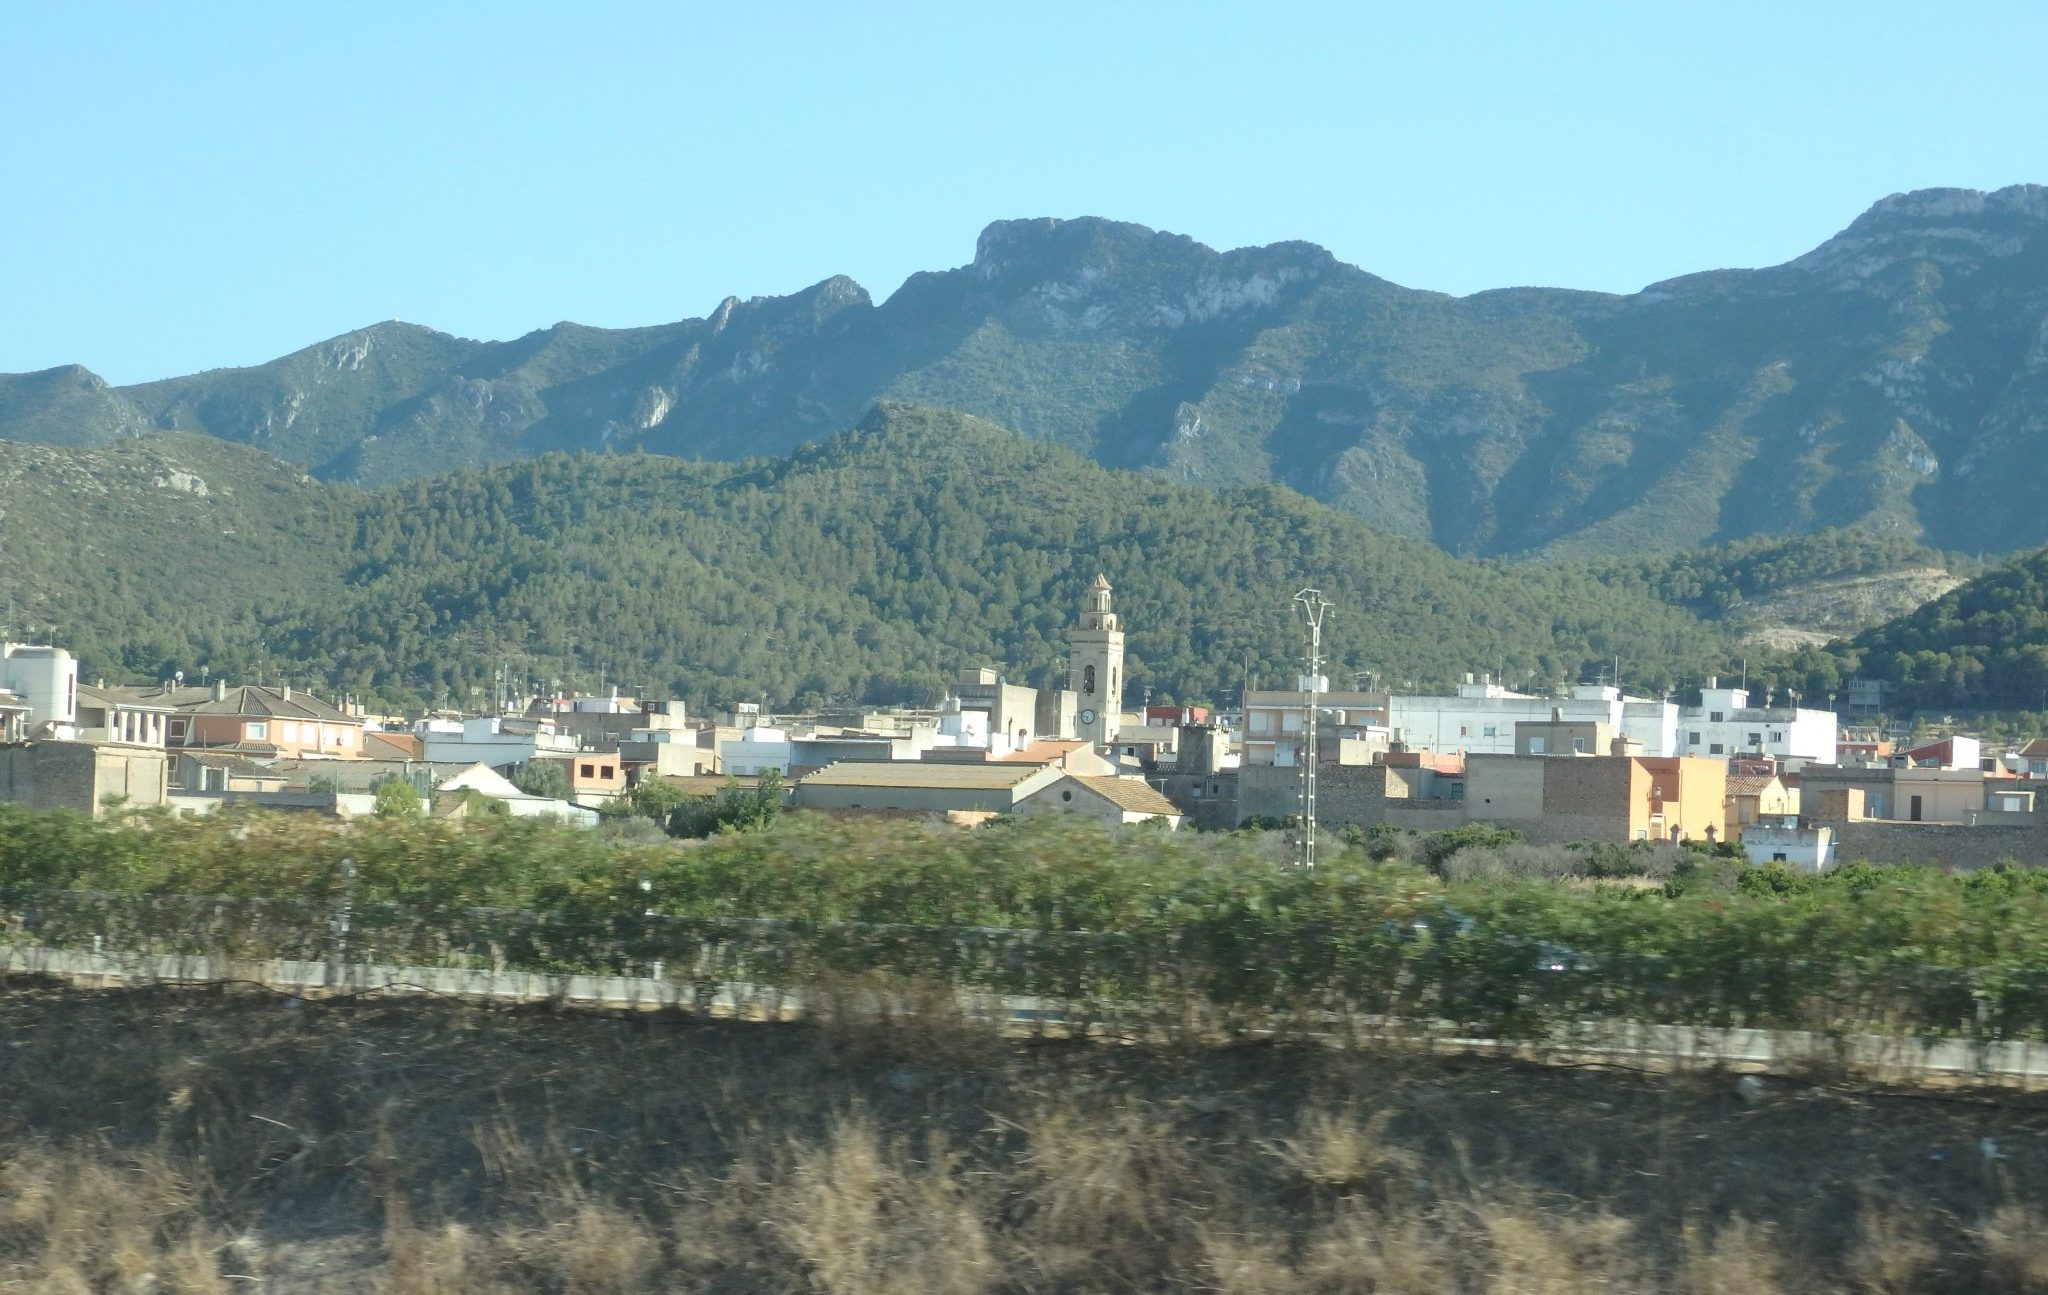 one of many villages you can spot from the highway in Baix Emporda